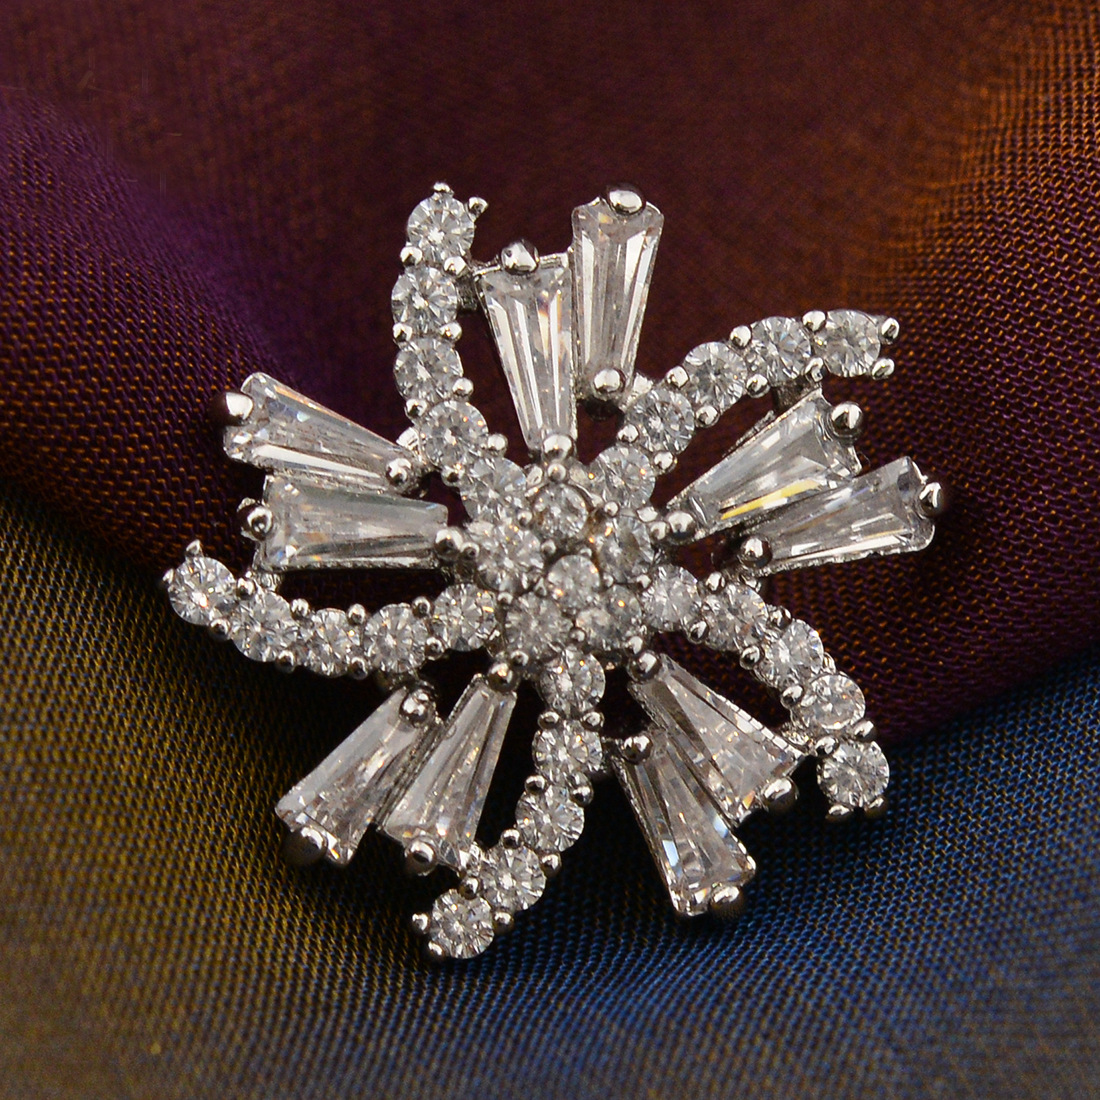 Sophisticated Flower-Shaped Brooch for Casual and Formal Occasions